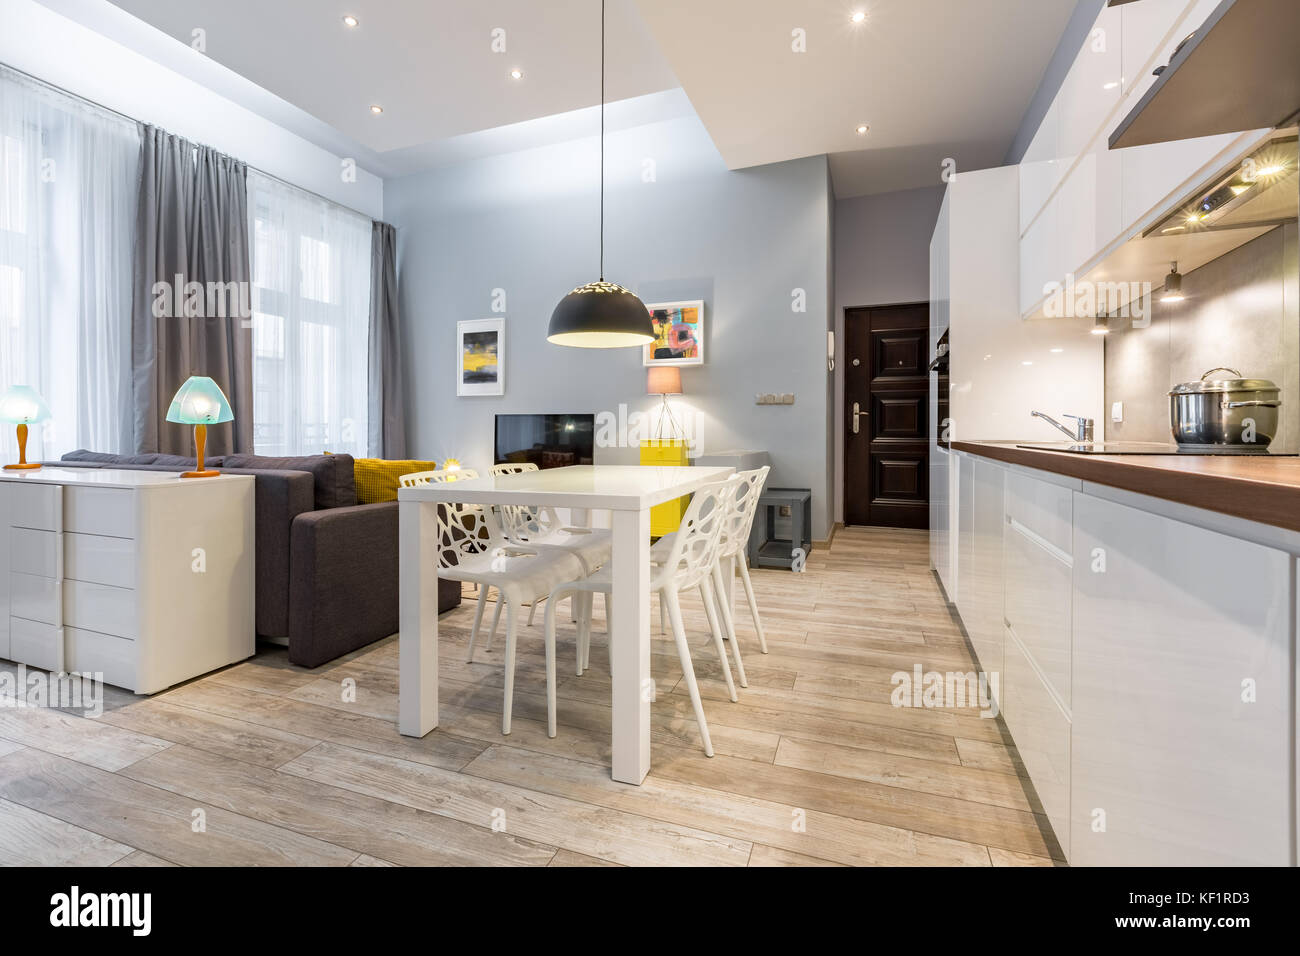 Modern Studio Flat With Kitchen Open To Living Room Stock Photo Alamy